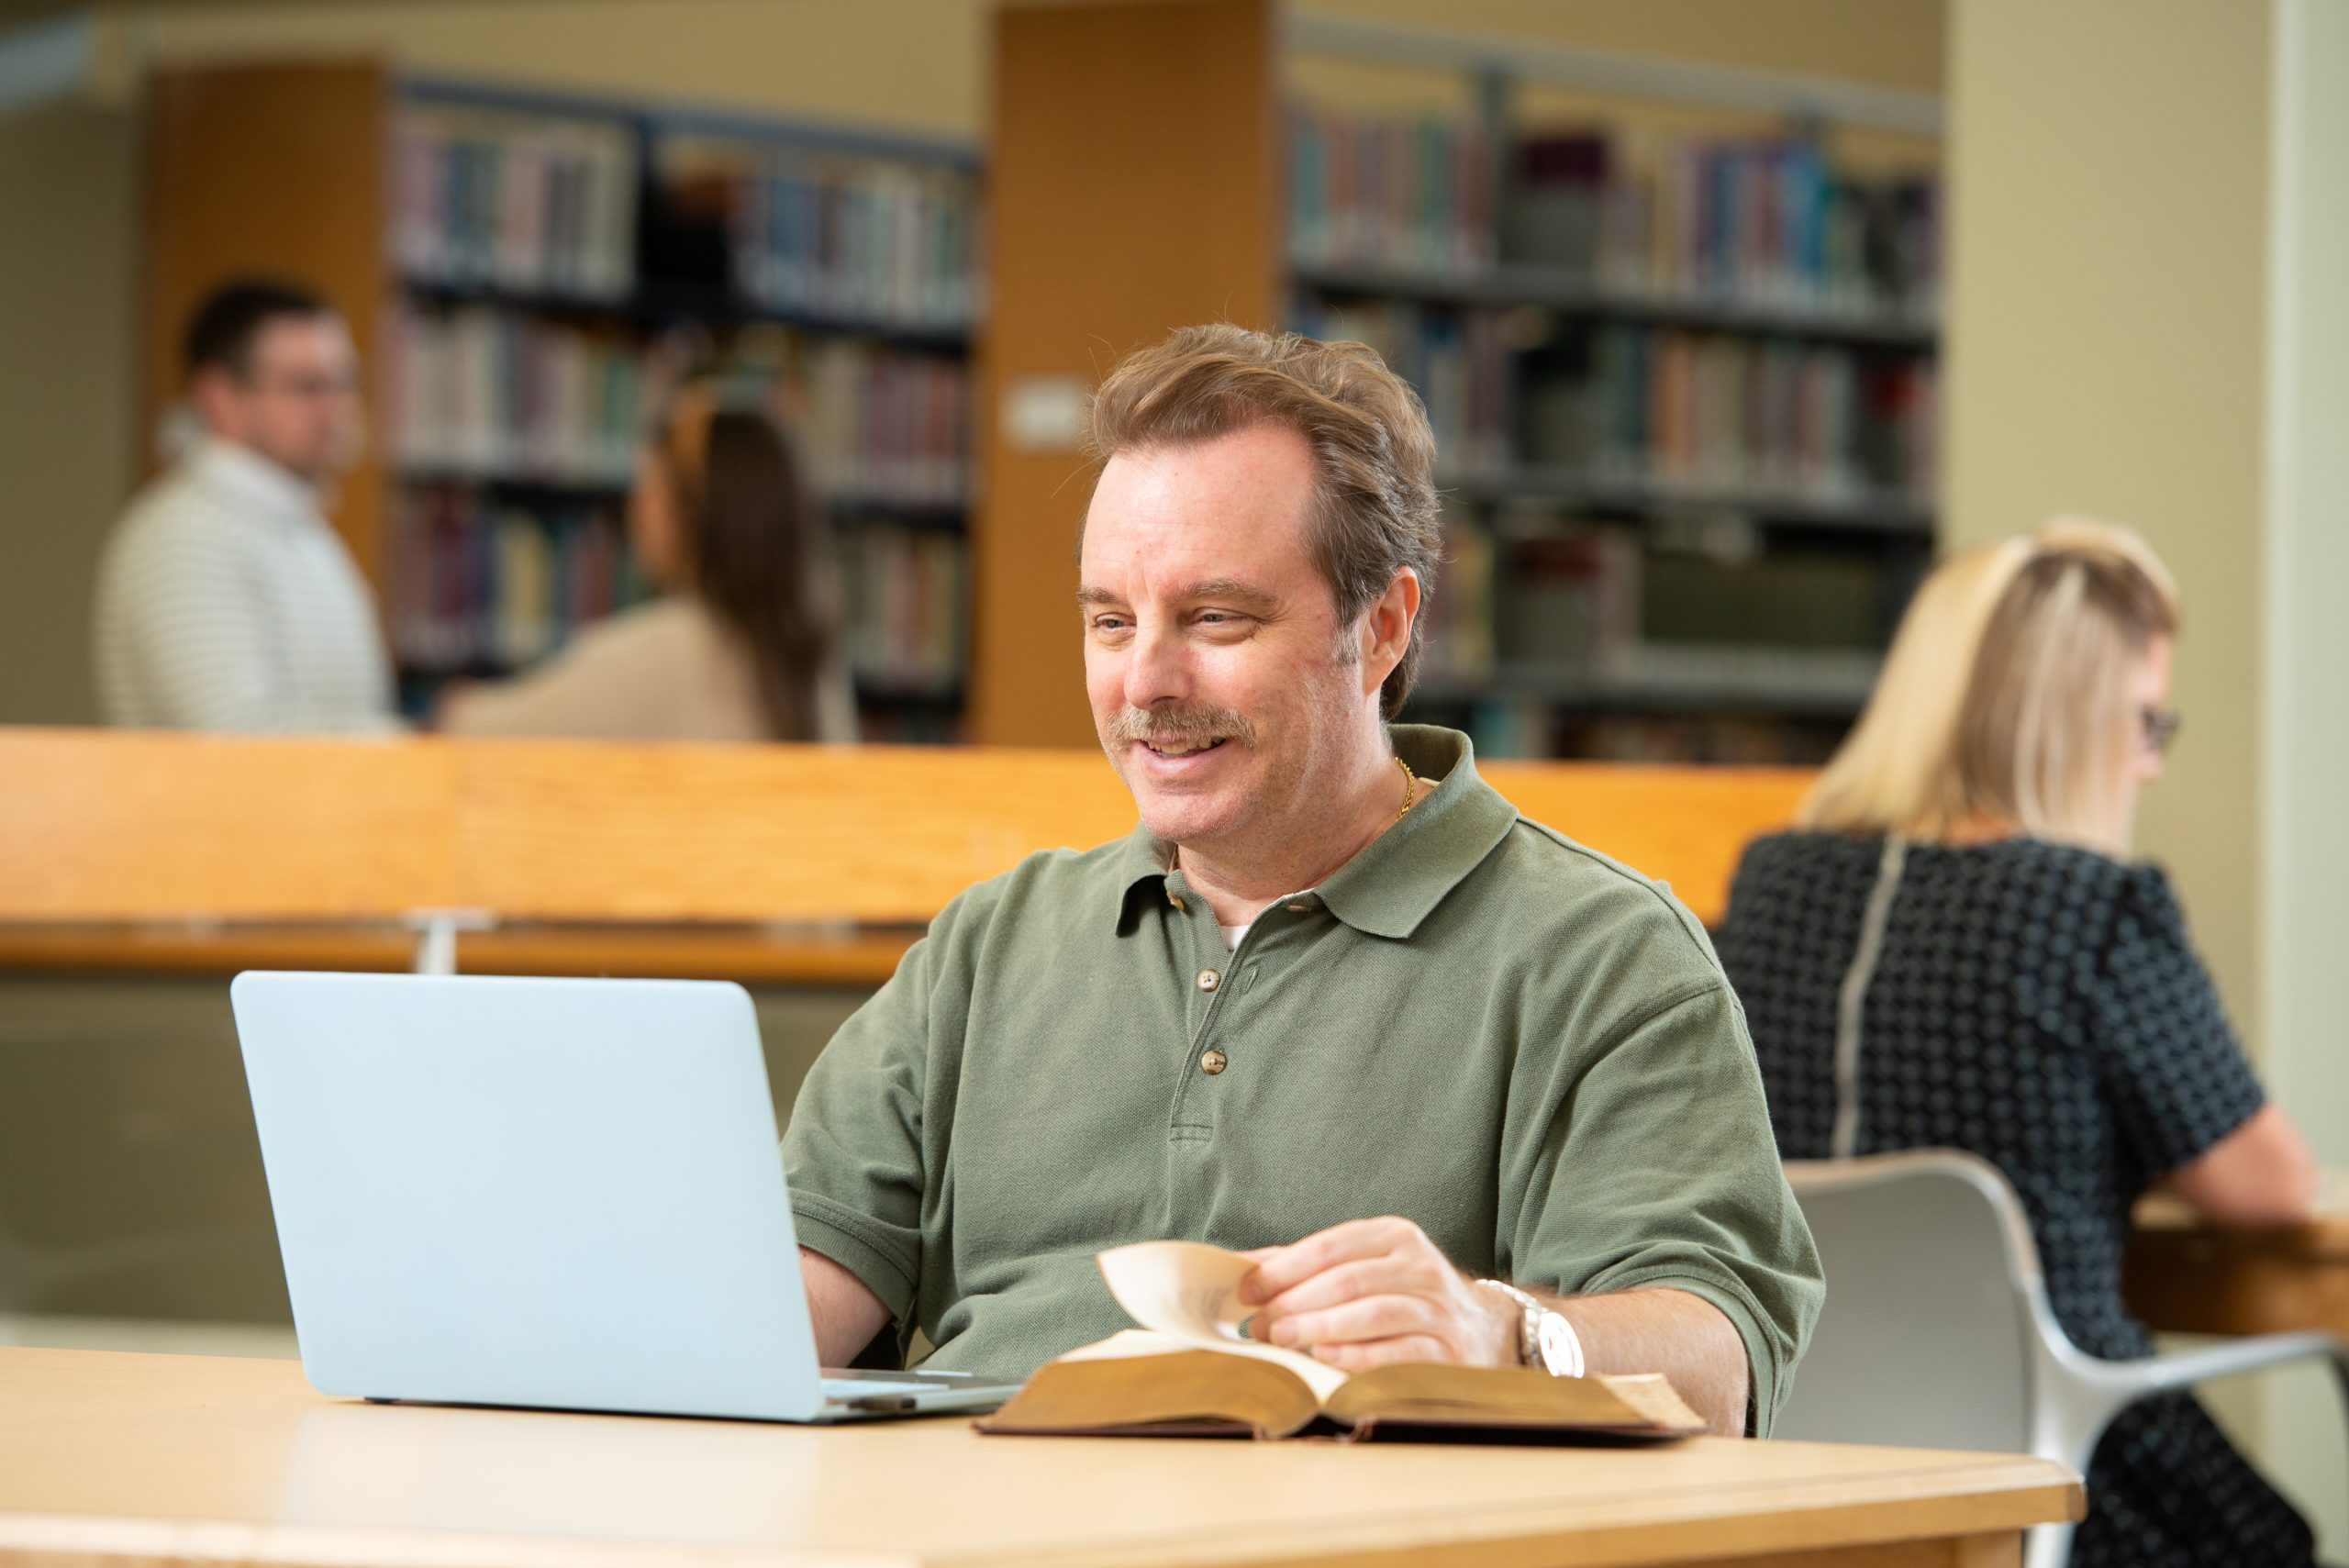 man in library using a laptop